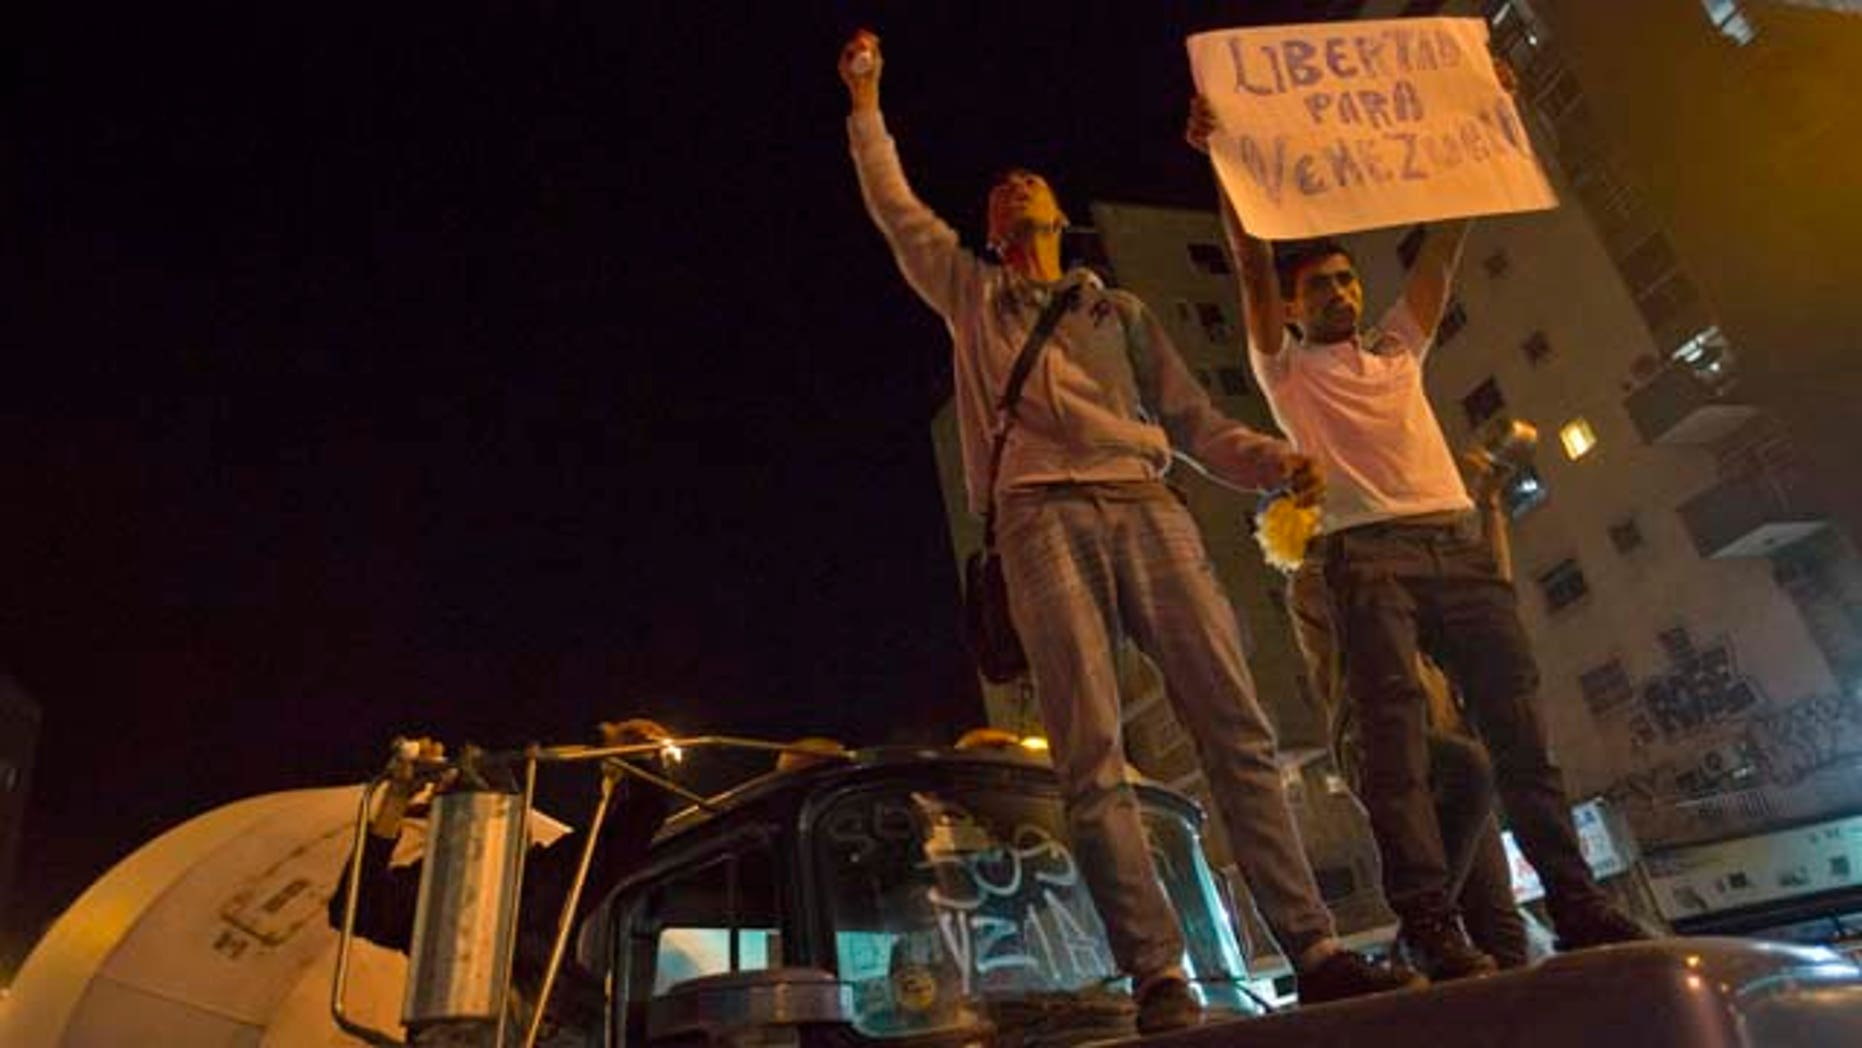 Feb. 19, 2015: Protesters in Caracas, Venezuela stand on the hood of a Mack truck, one holding a sign that reads in Spanish 'Freedom for Venezuela' during a protest sparked by the violent arrest of Caracas Mayor Antonio Ledezma. (AP Photo/Alejandro Cegarra)